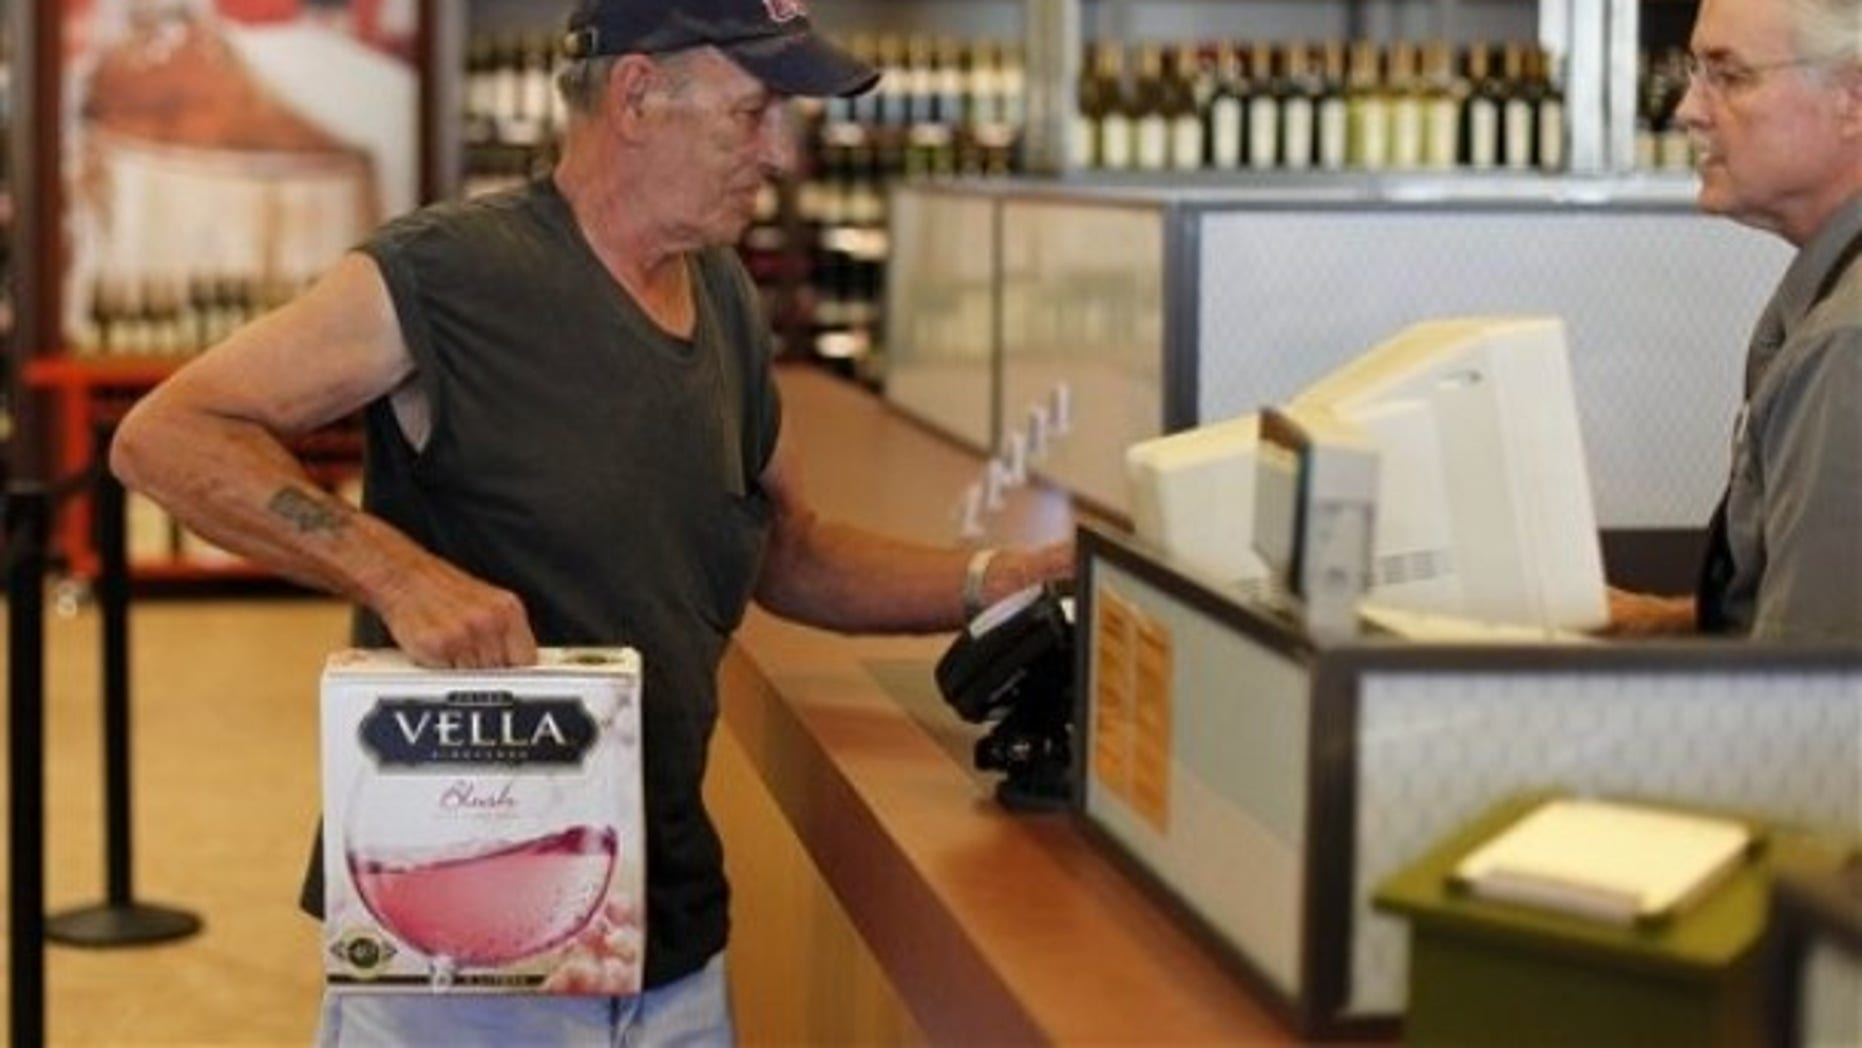 In this Thursday, July 22, 2010 photo, George Slack, left, of Lambertville N.J. makes the first purchase at a newly opened state wine and liquor store in New Hope Pa.